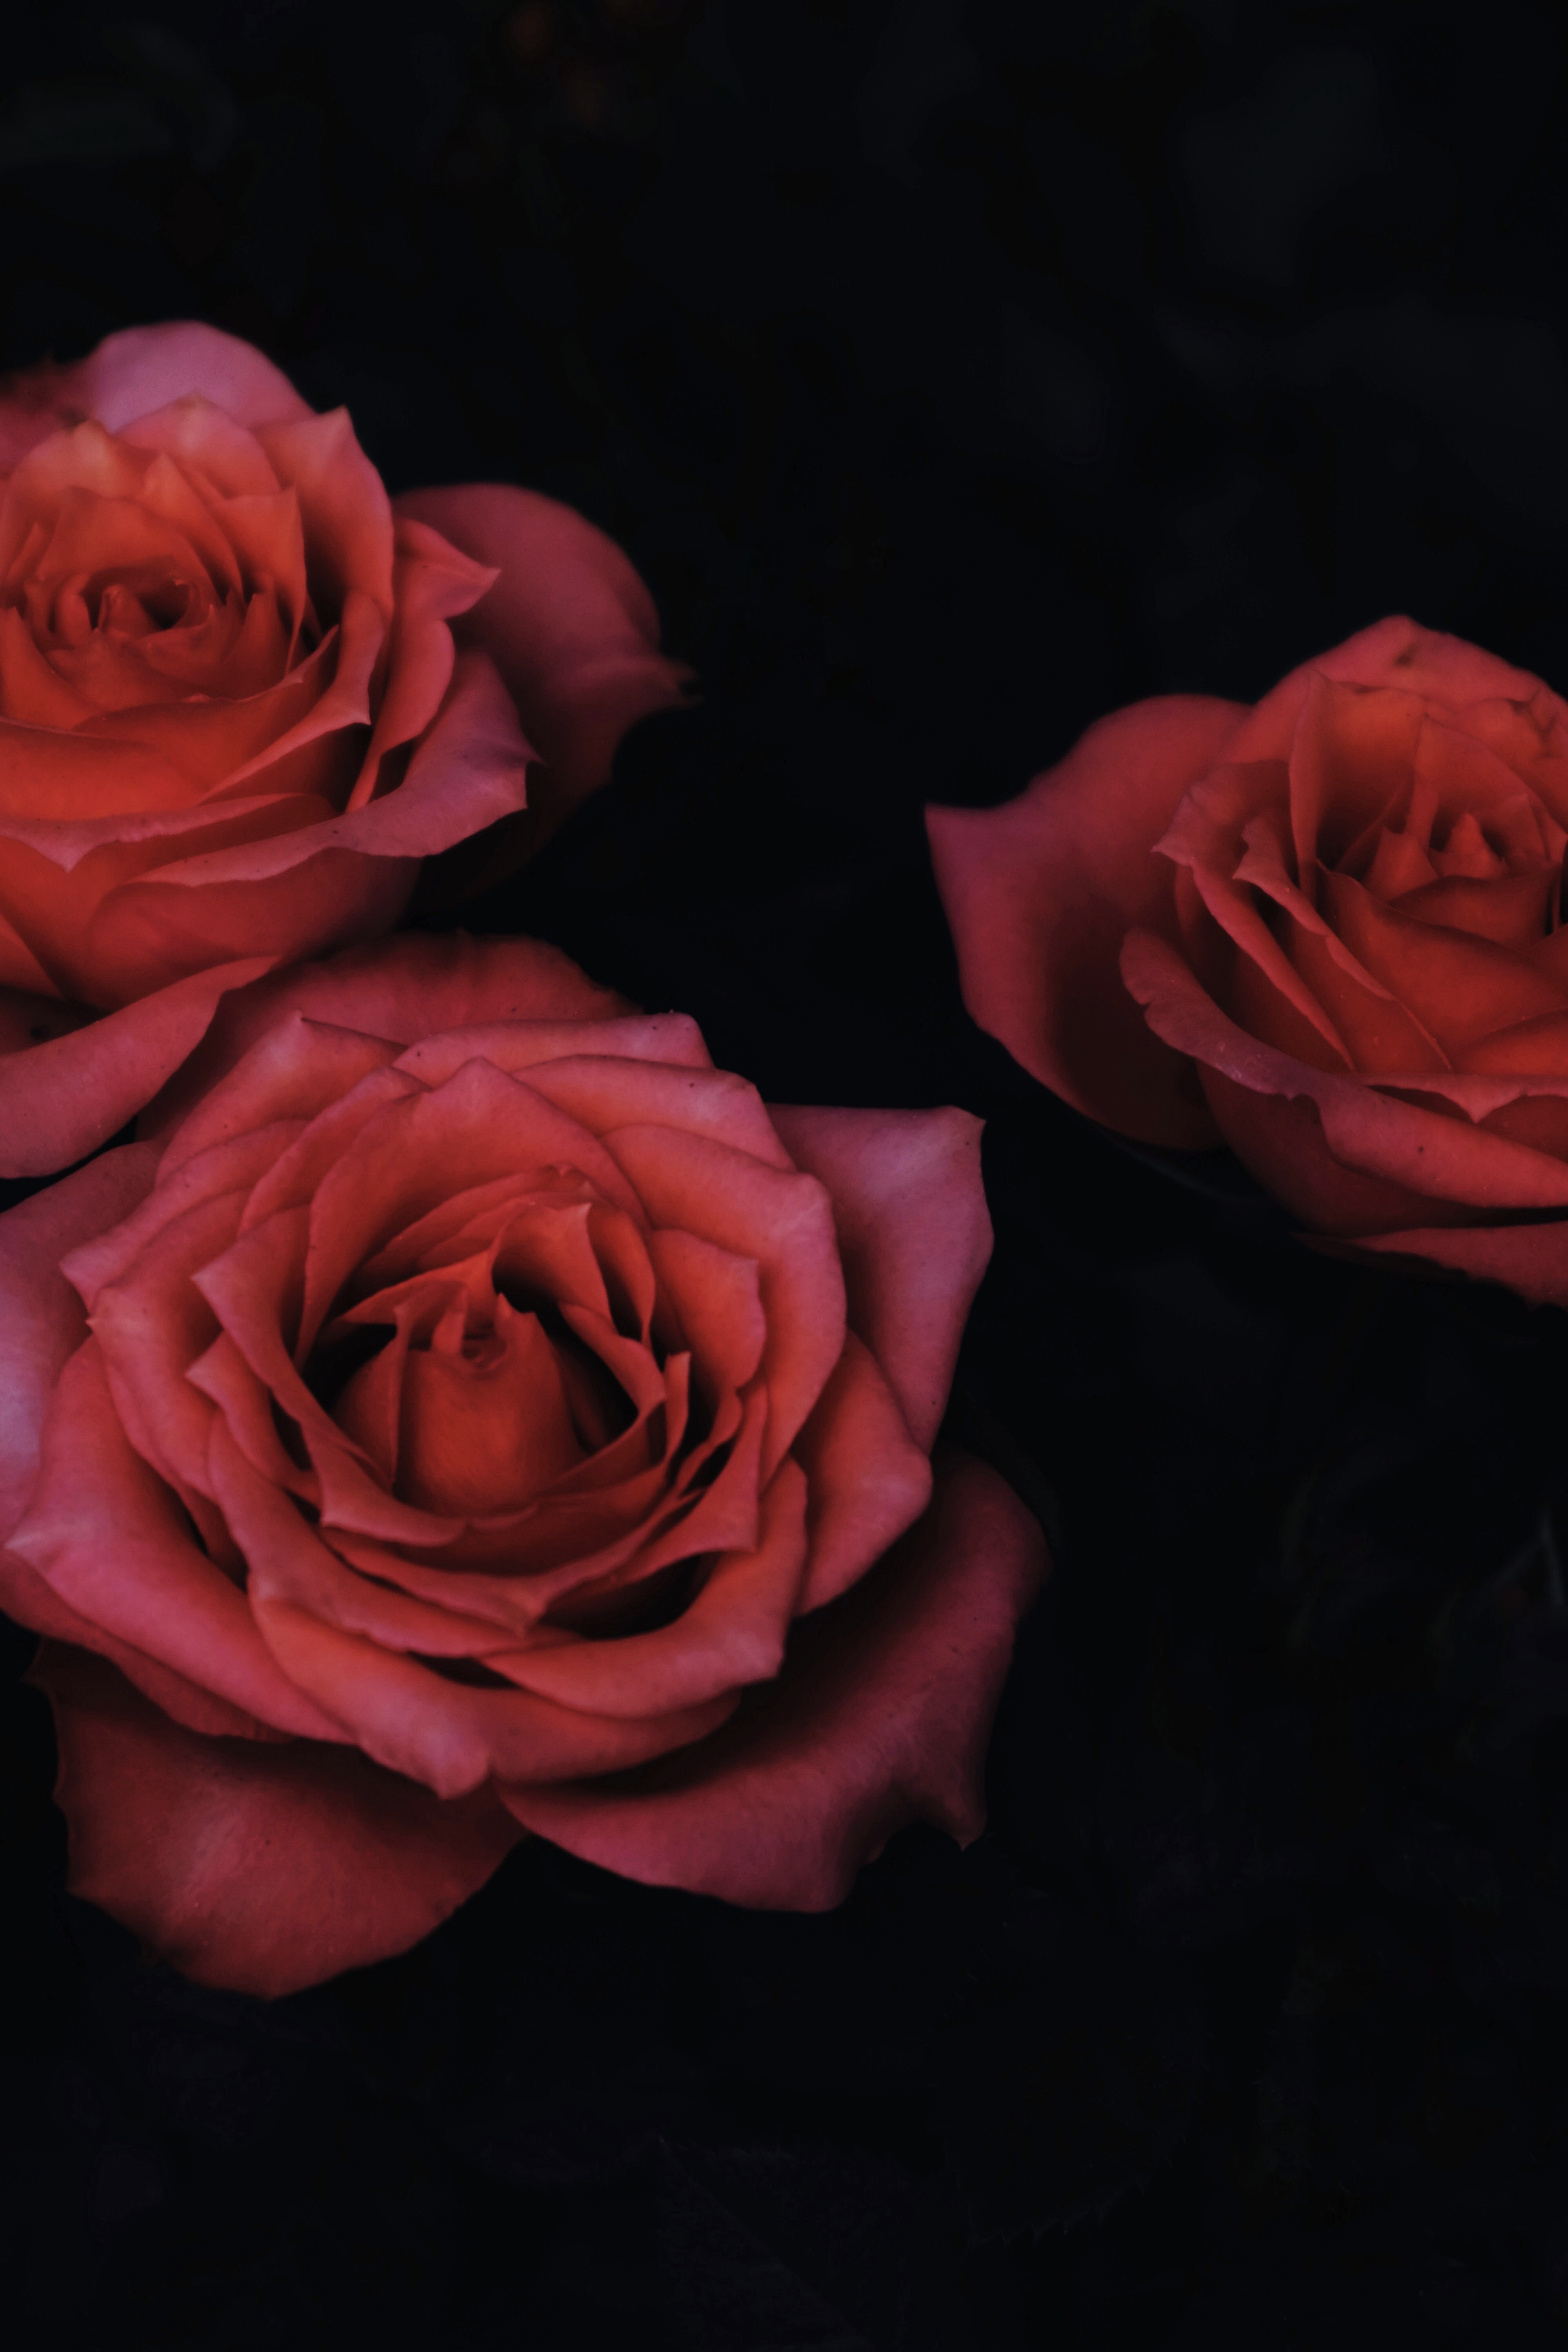 chiaroscuro photography of three red roses